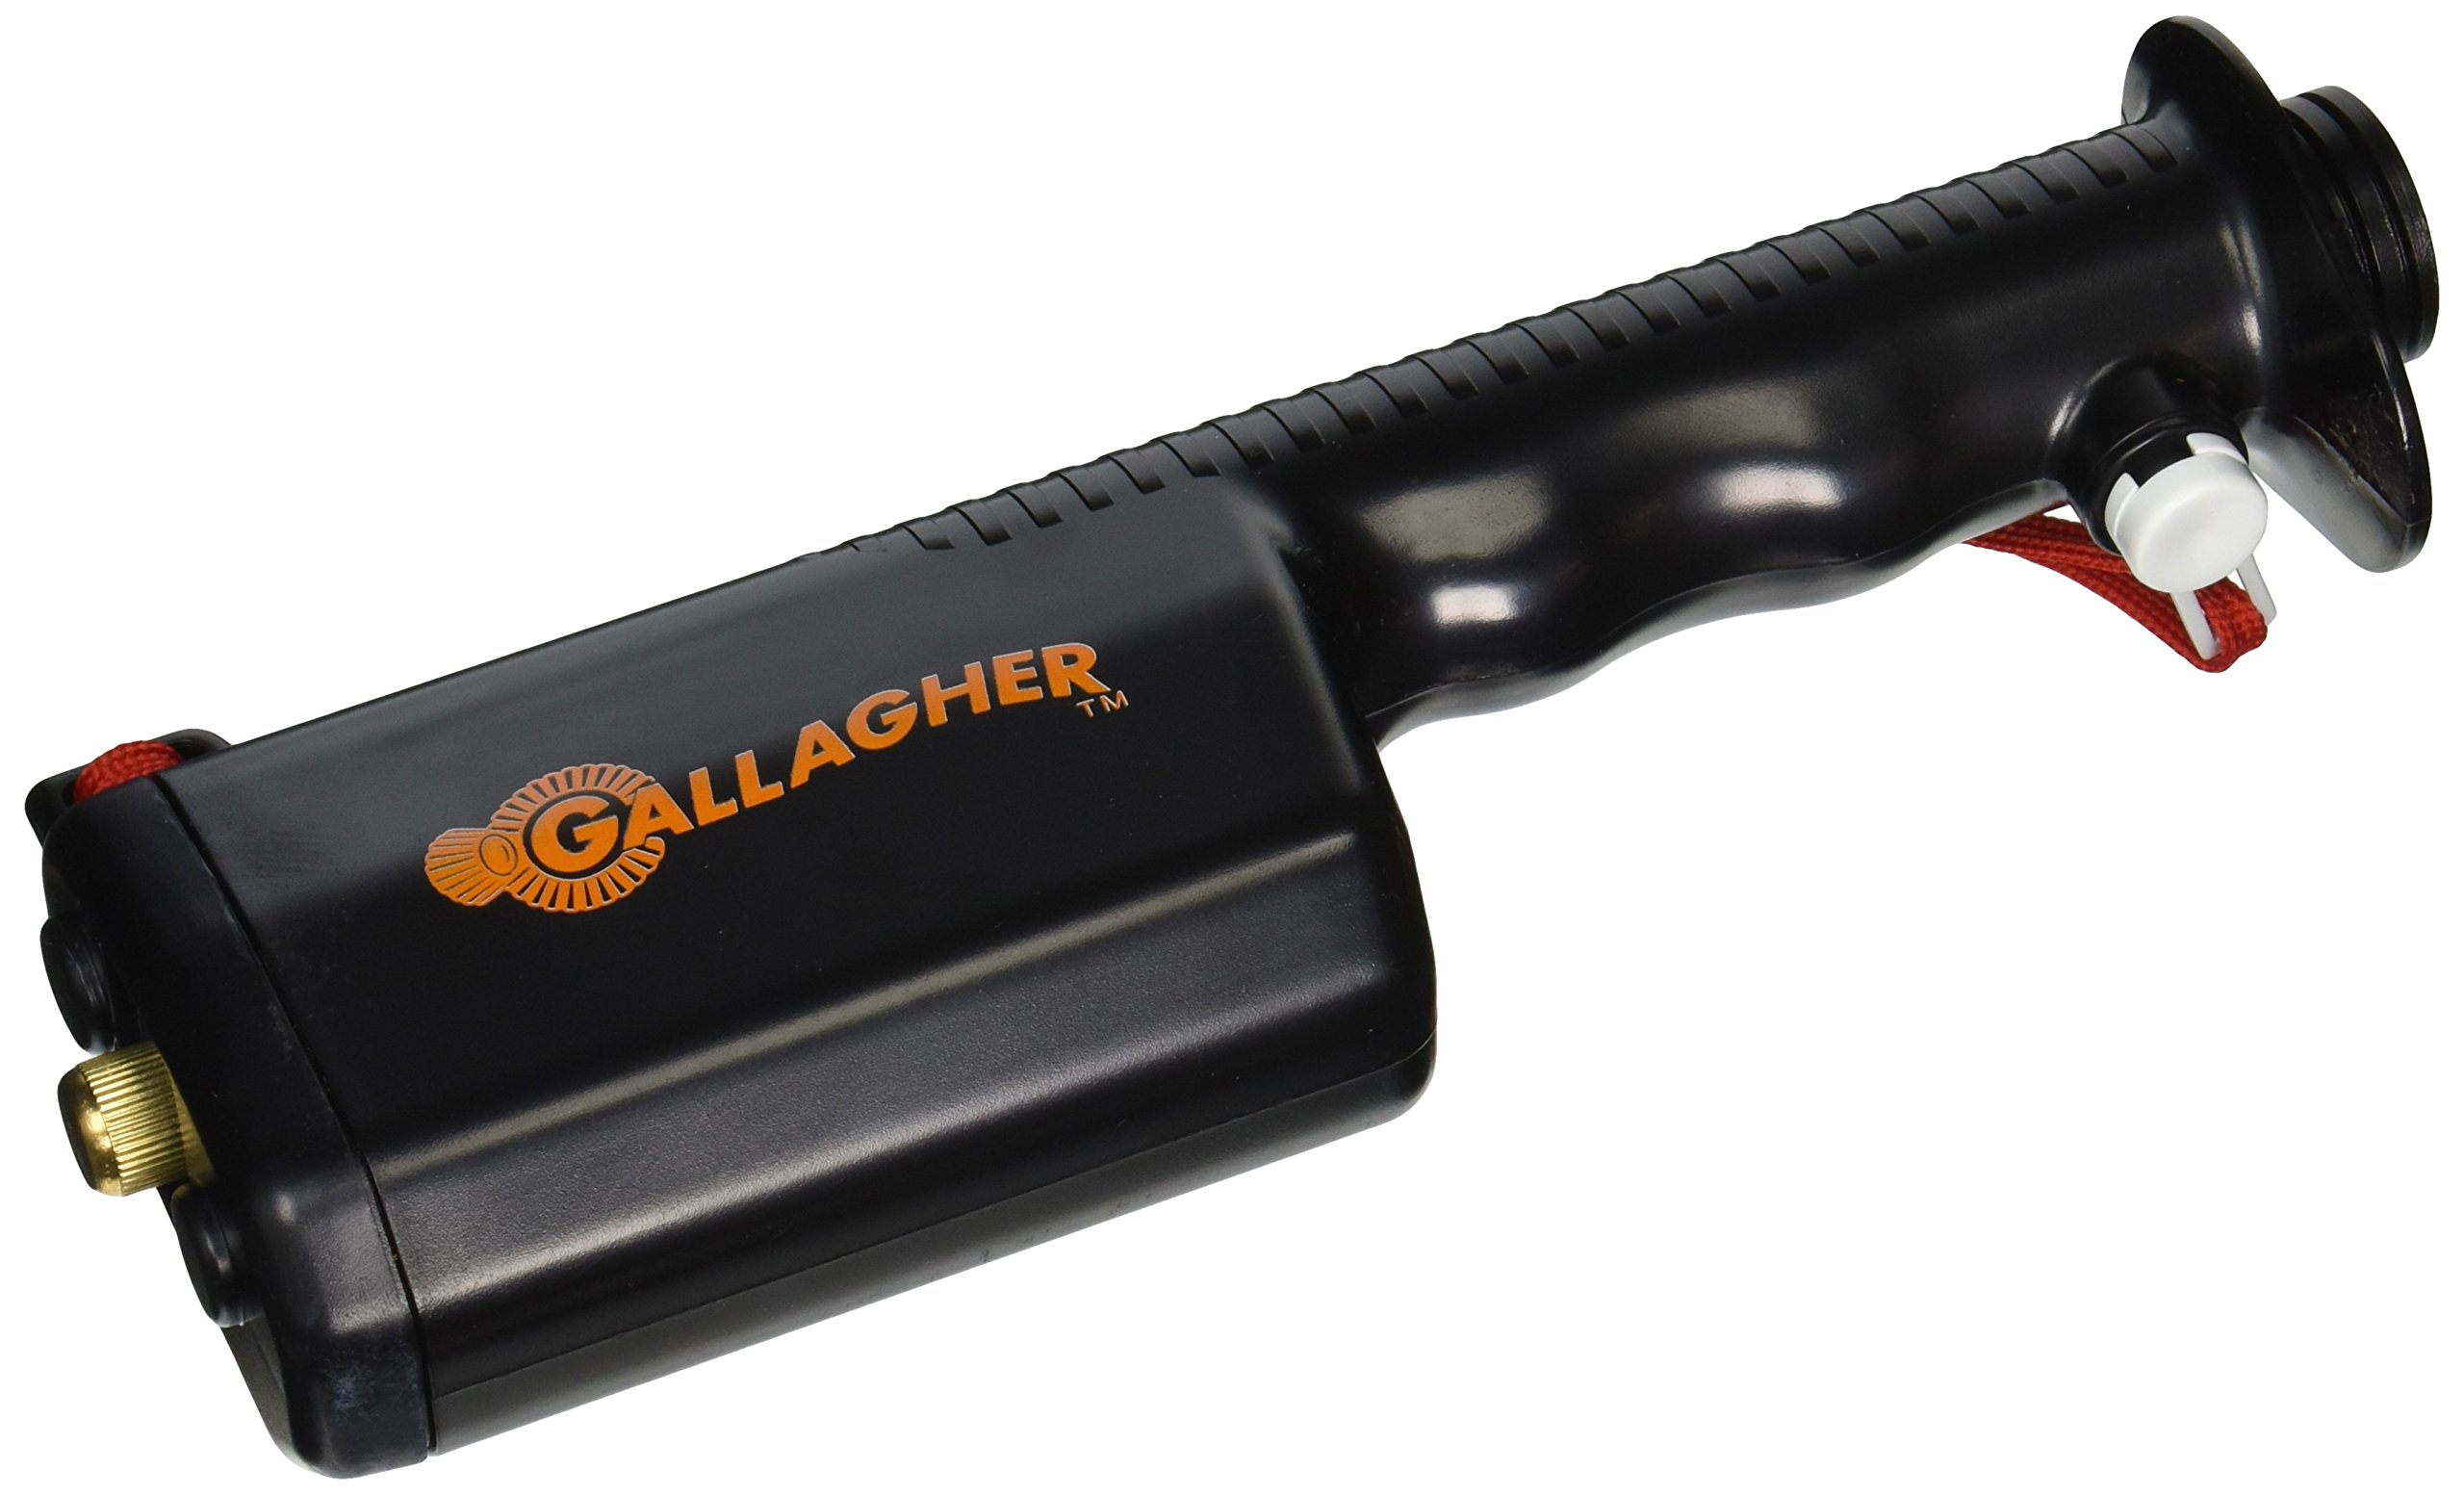 Gallagher AHU-200 Stock Prod Handle Livestock Equipment by Gallagher